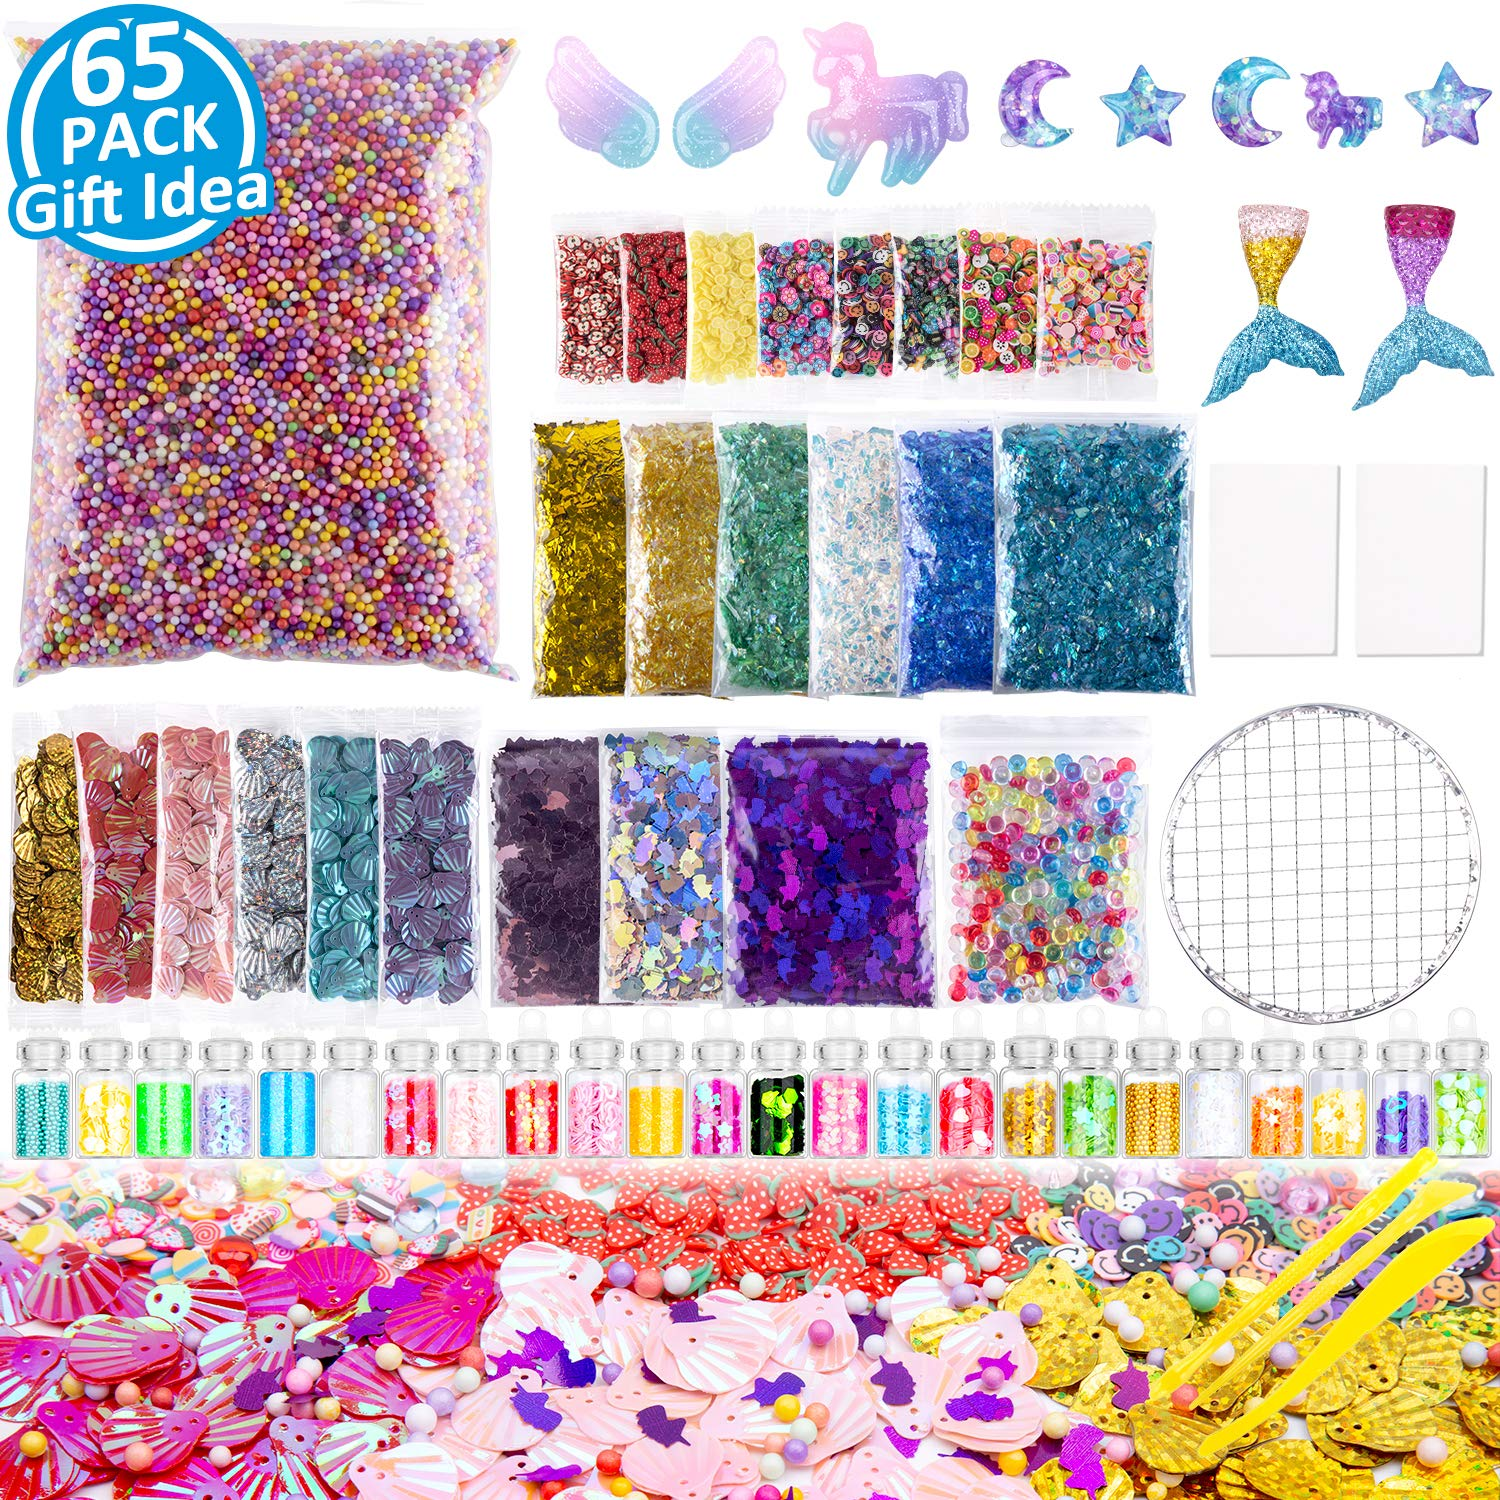 f79fea1f8bc1 Slime Supplies Kit, 65 Pack Slime Suff Charms, Include Unicorn Glitter  Shake, Unicorn Charms, Foam Balls, Fishbowl Beads, Sugar Paper, Slices,  Shell, ...